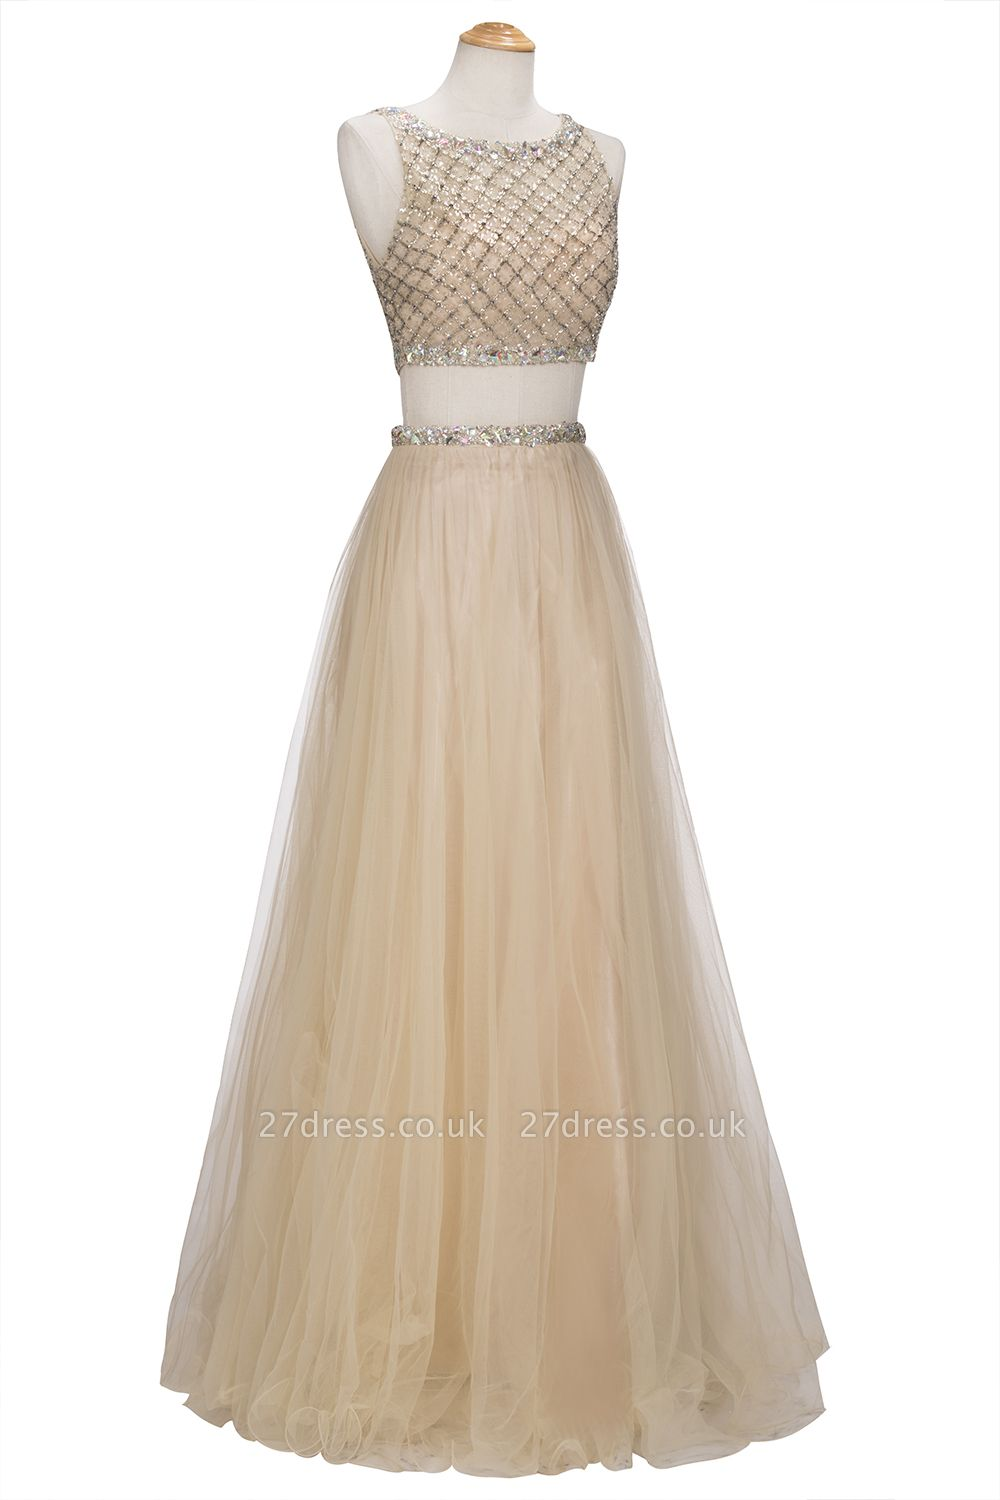 Chic Beading Tulle Two-Piece A-line Prom Dress UKes UK